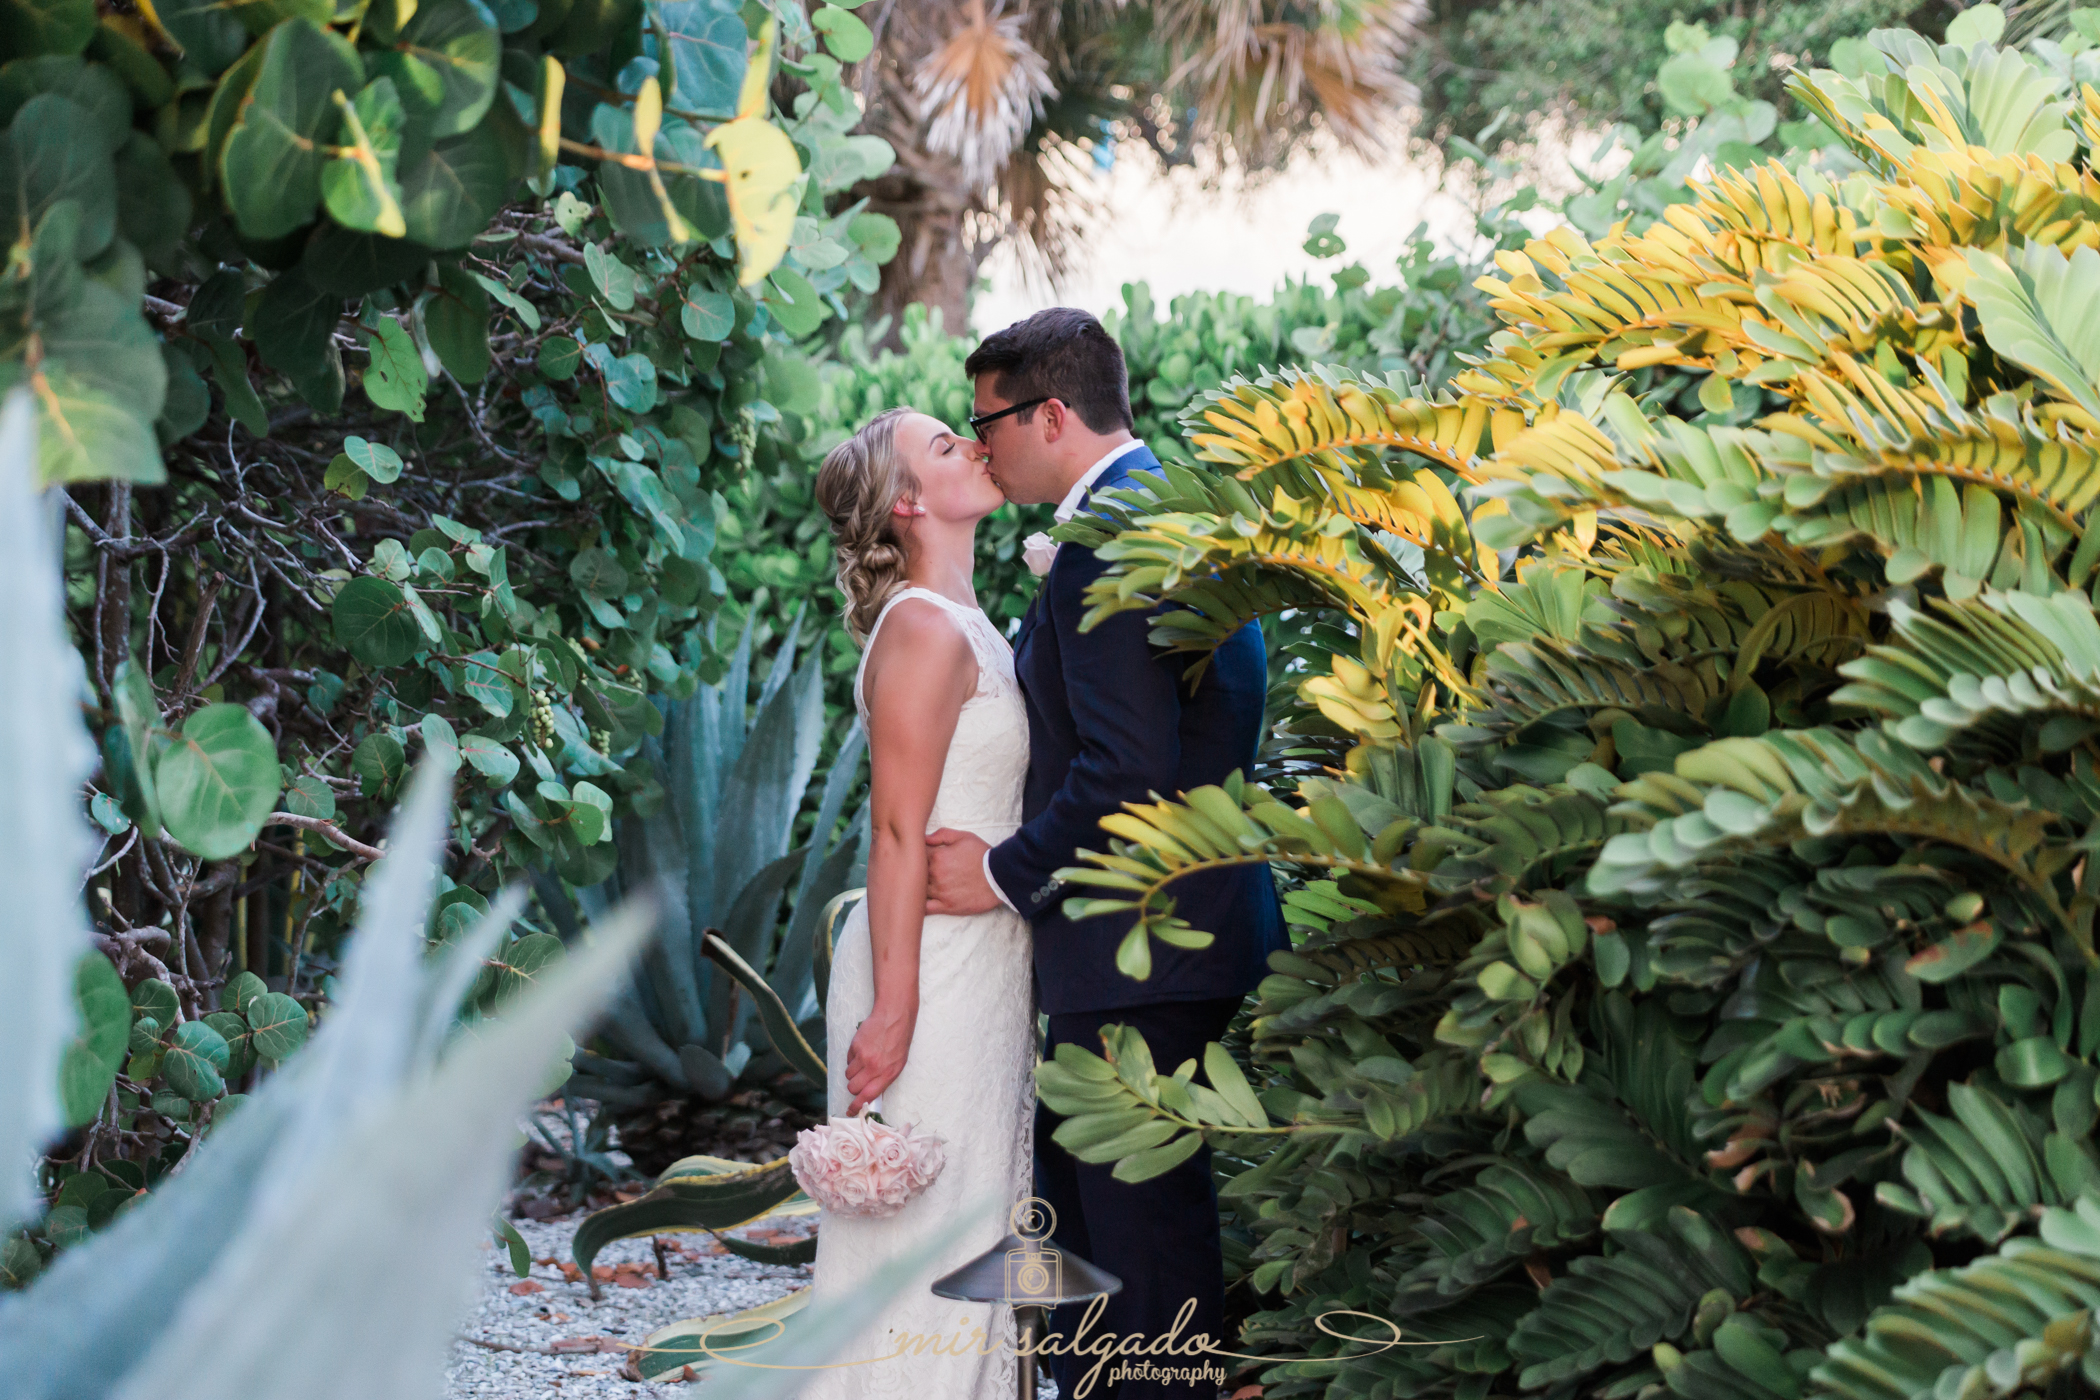 garden-backdrop, unique-wedding-backdrops, plant, wedding-portraits, outdoor-wedding-photography